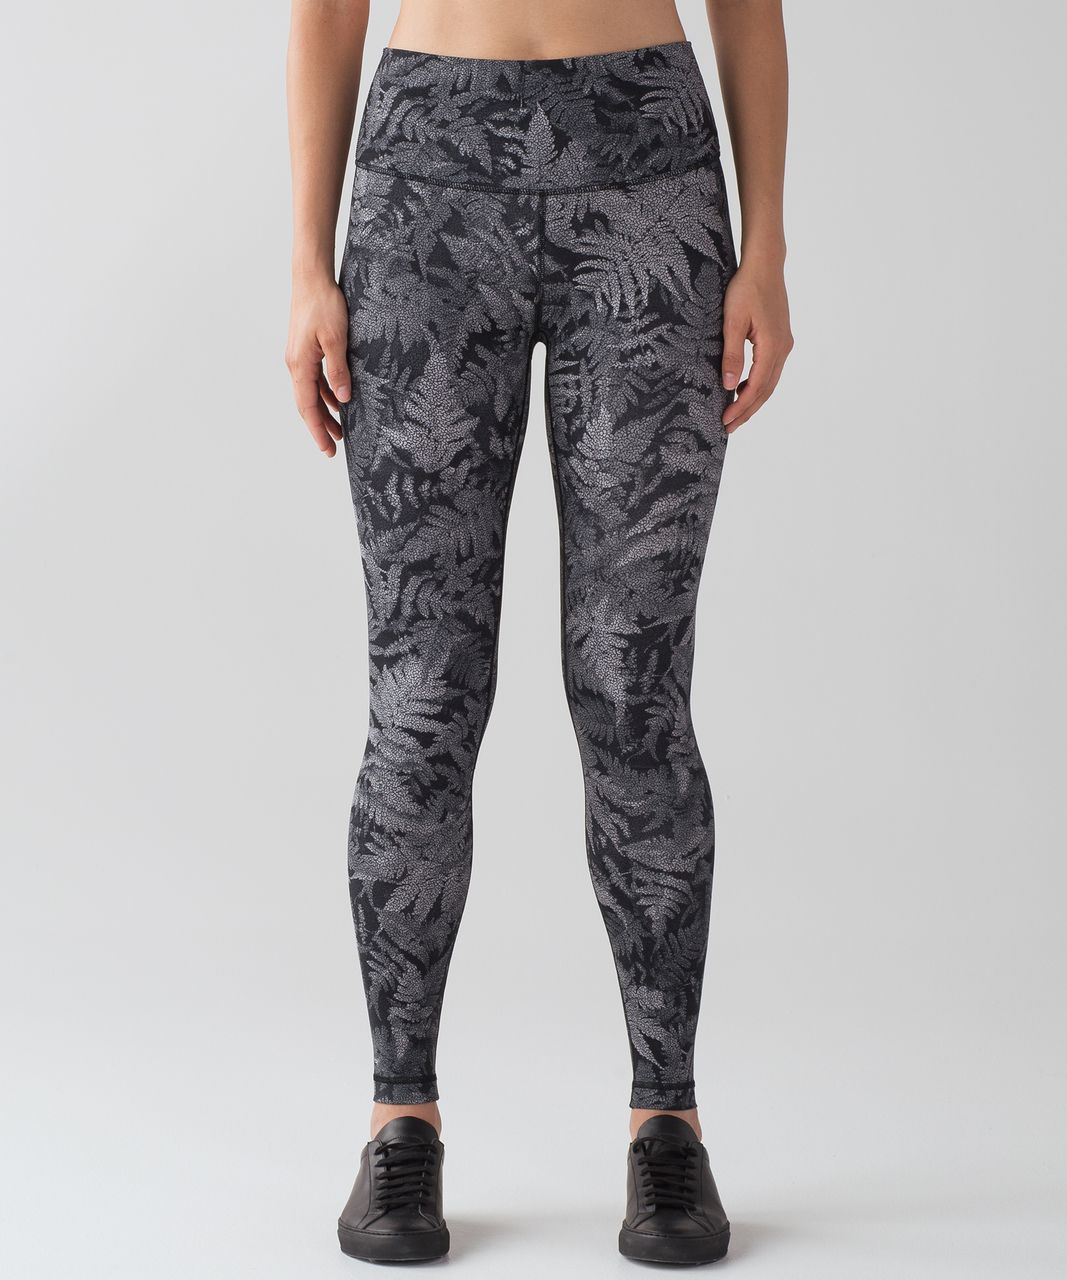 "Lululemon Wunder Under Hi-Rise 7/8 Tight (Full-On Luxtreme 25"") - Kindred Spirit Black Multi"